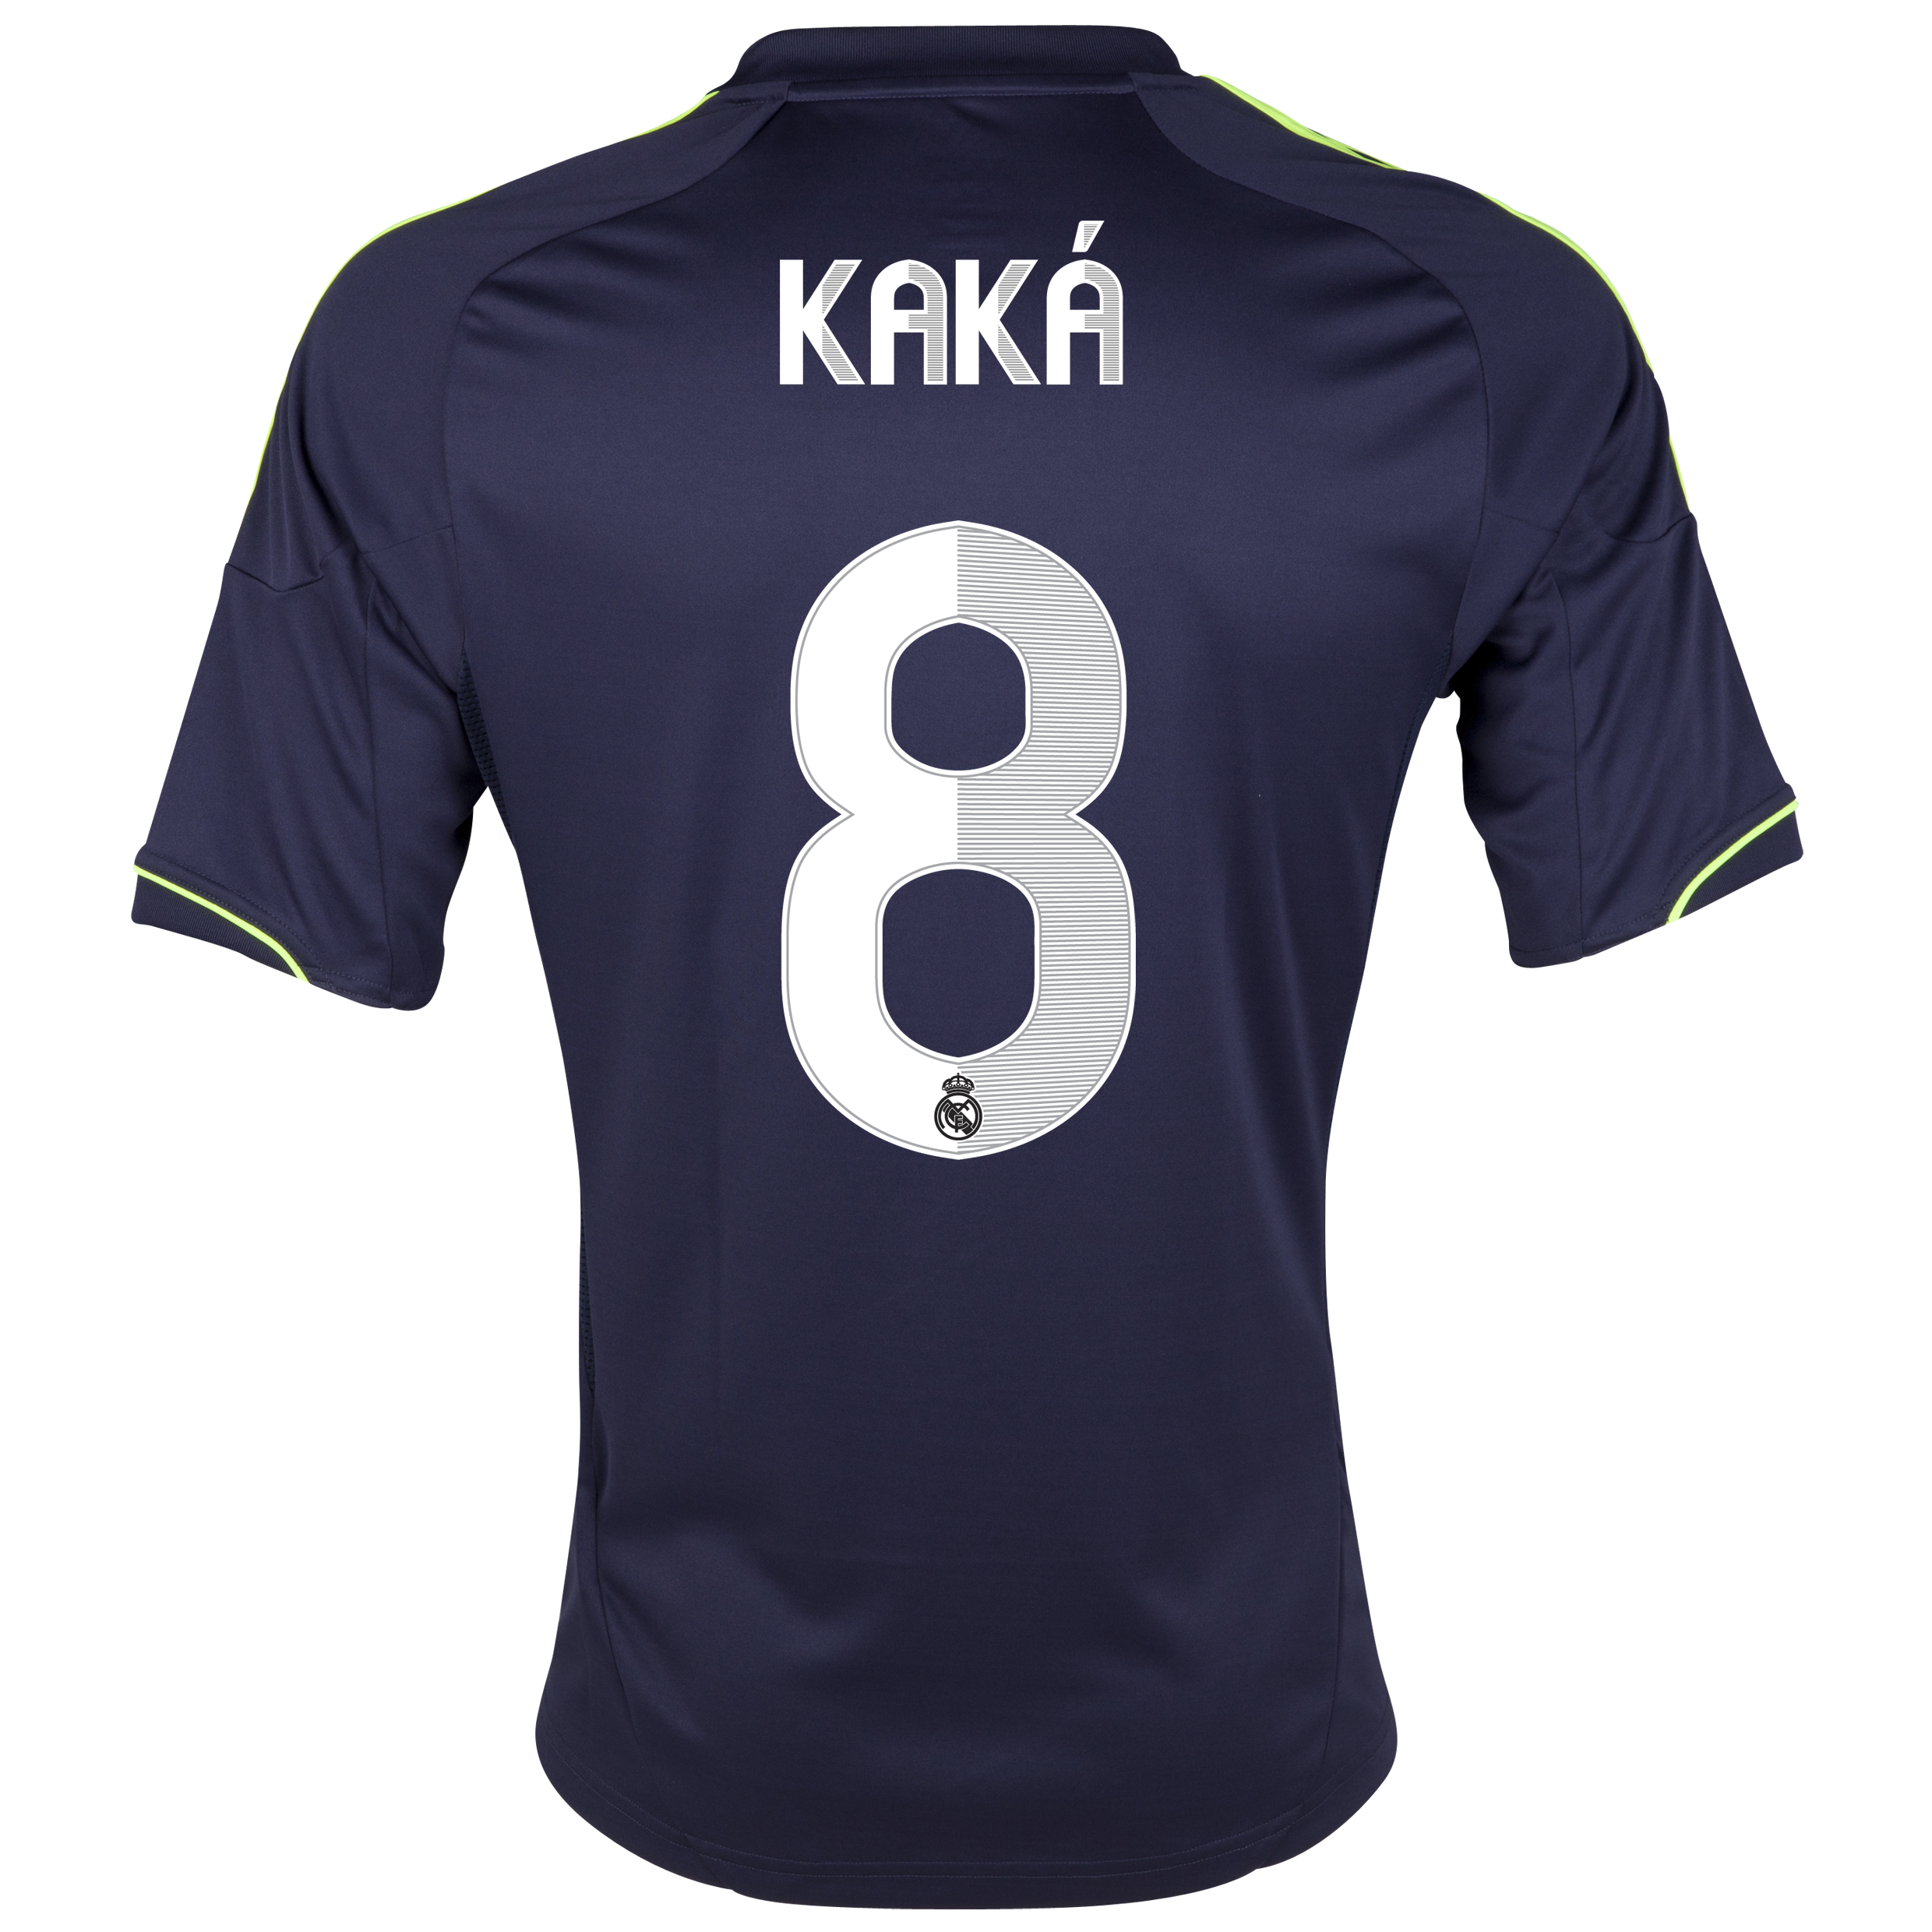 Camiseta visitante Real Madrid 2012/13 con impresin 8 Kak